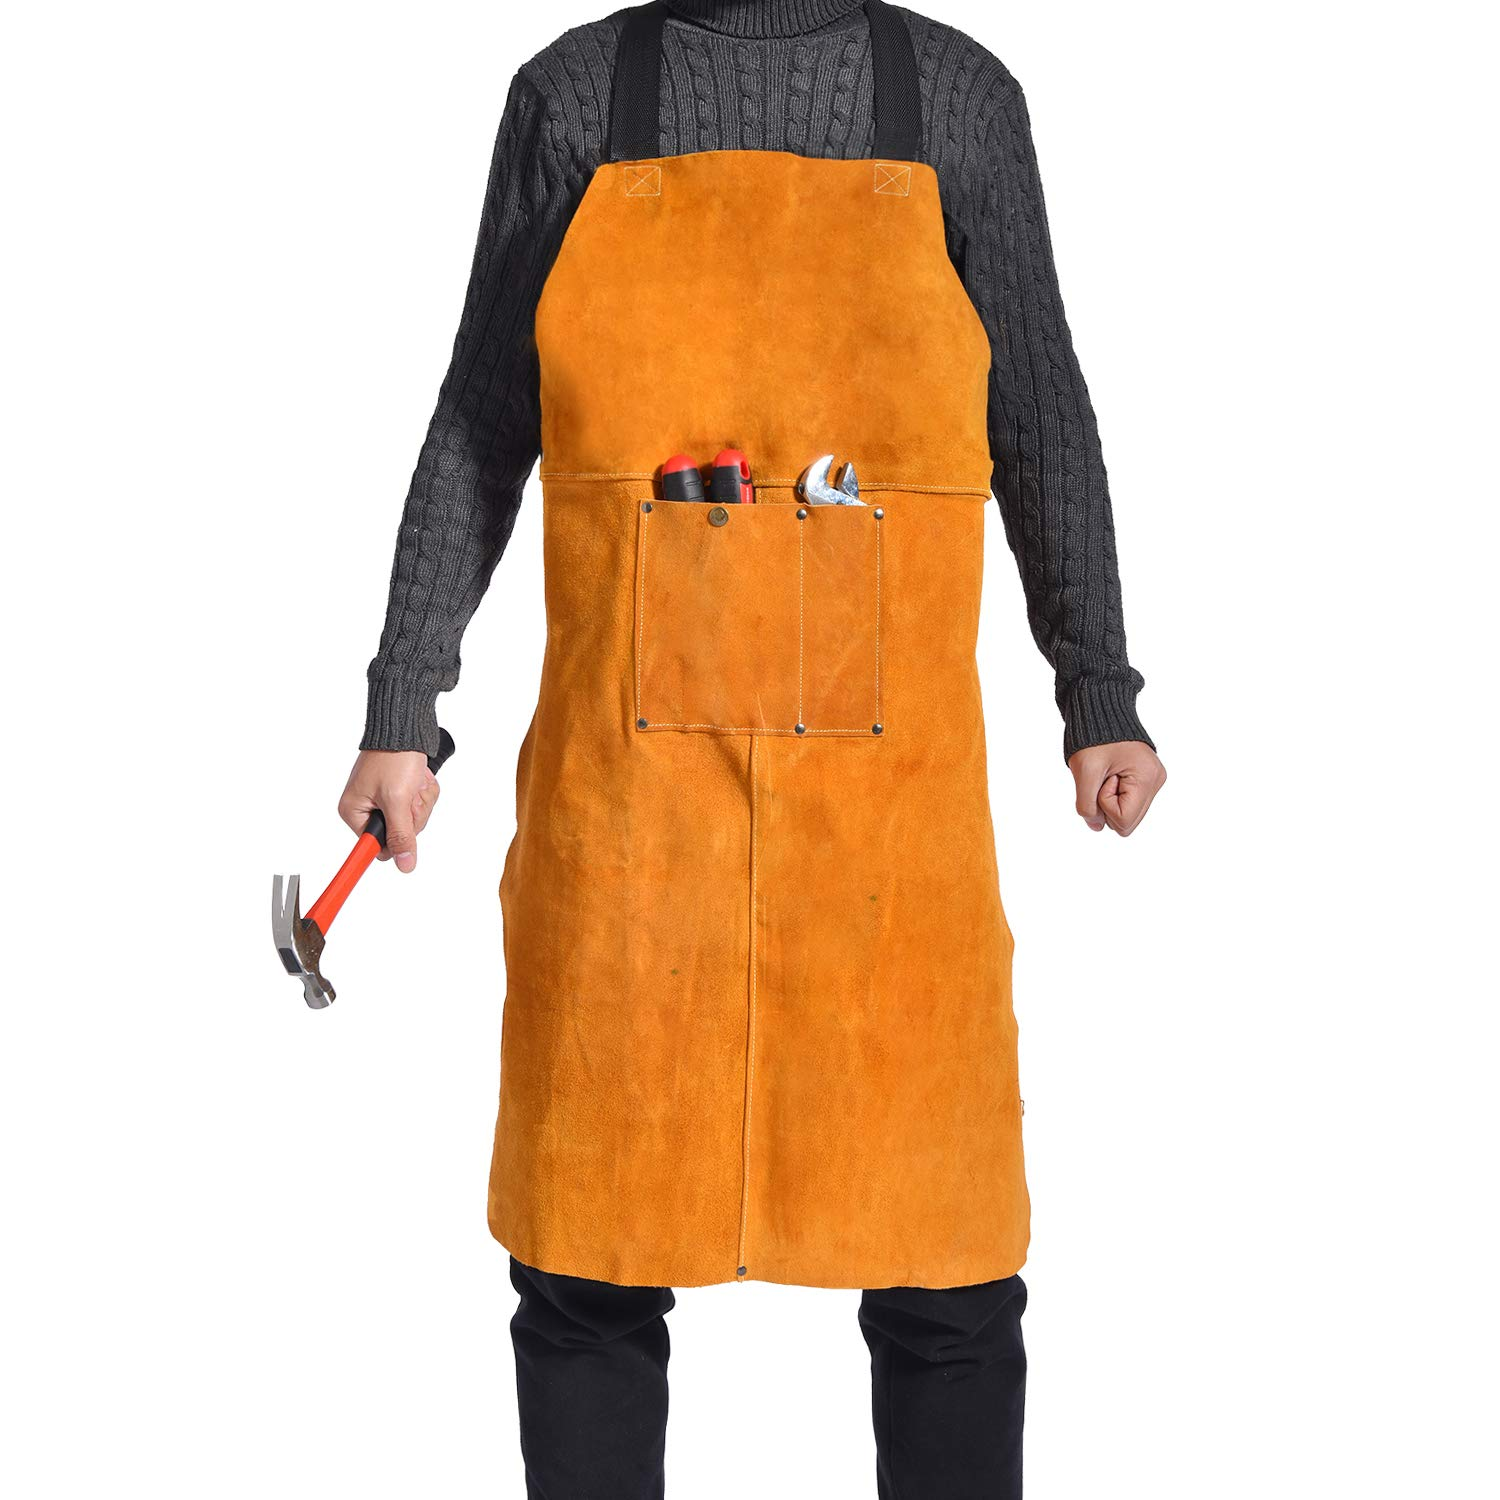 Leather Welding Apron - Heat & Flame Resistant Heavy Duty Work Bib Apron with Pockets and Adjustable Cross Back Straps for Men & Women,24'' W x 36'' L